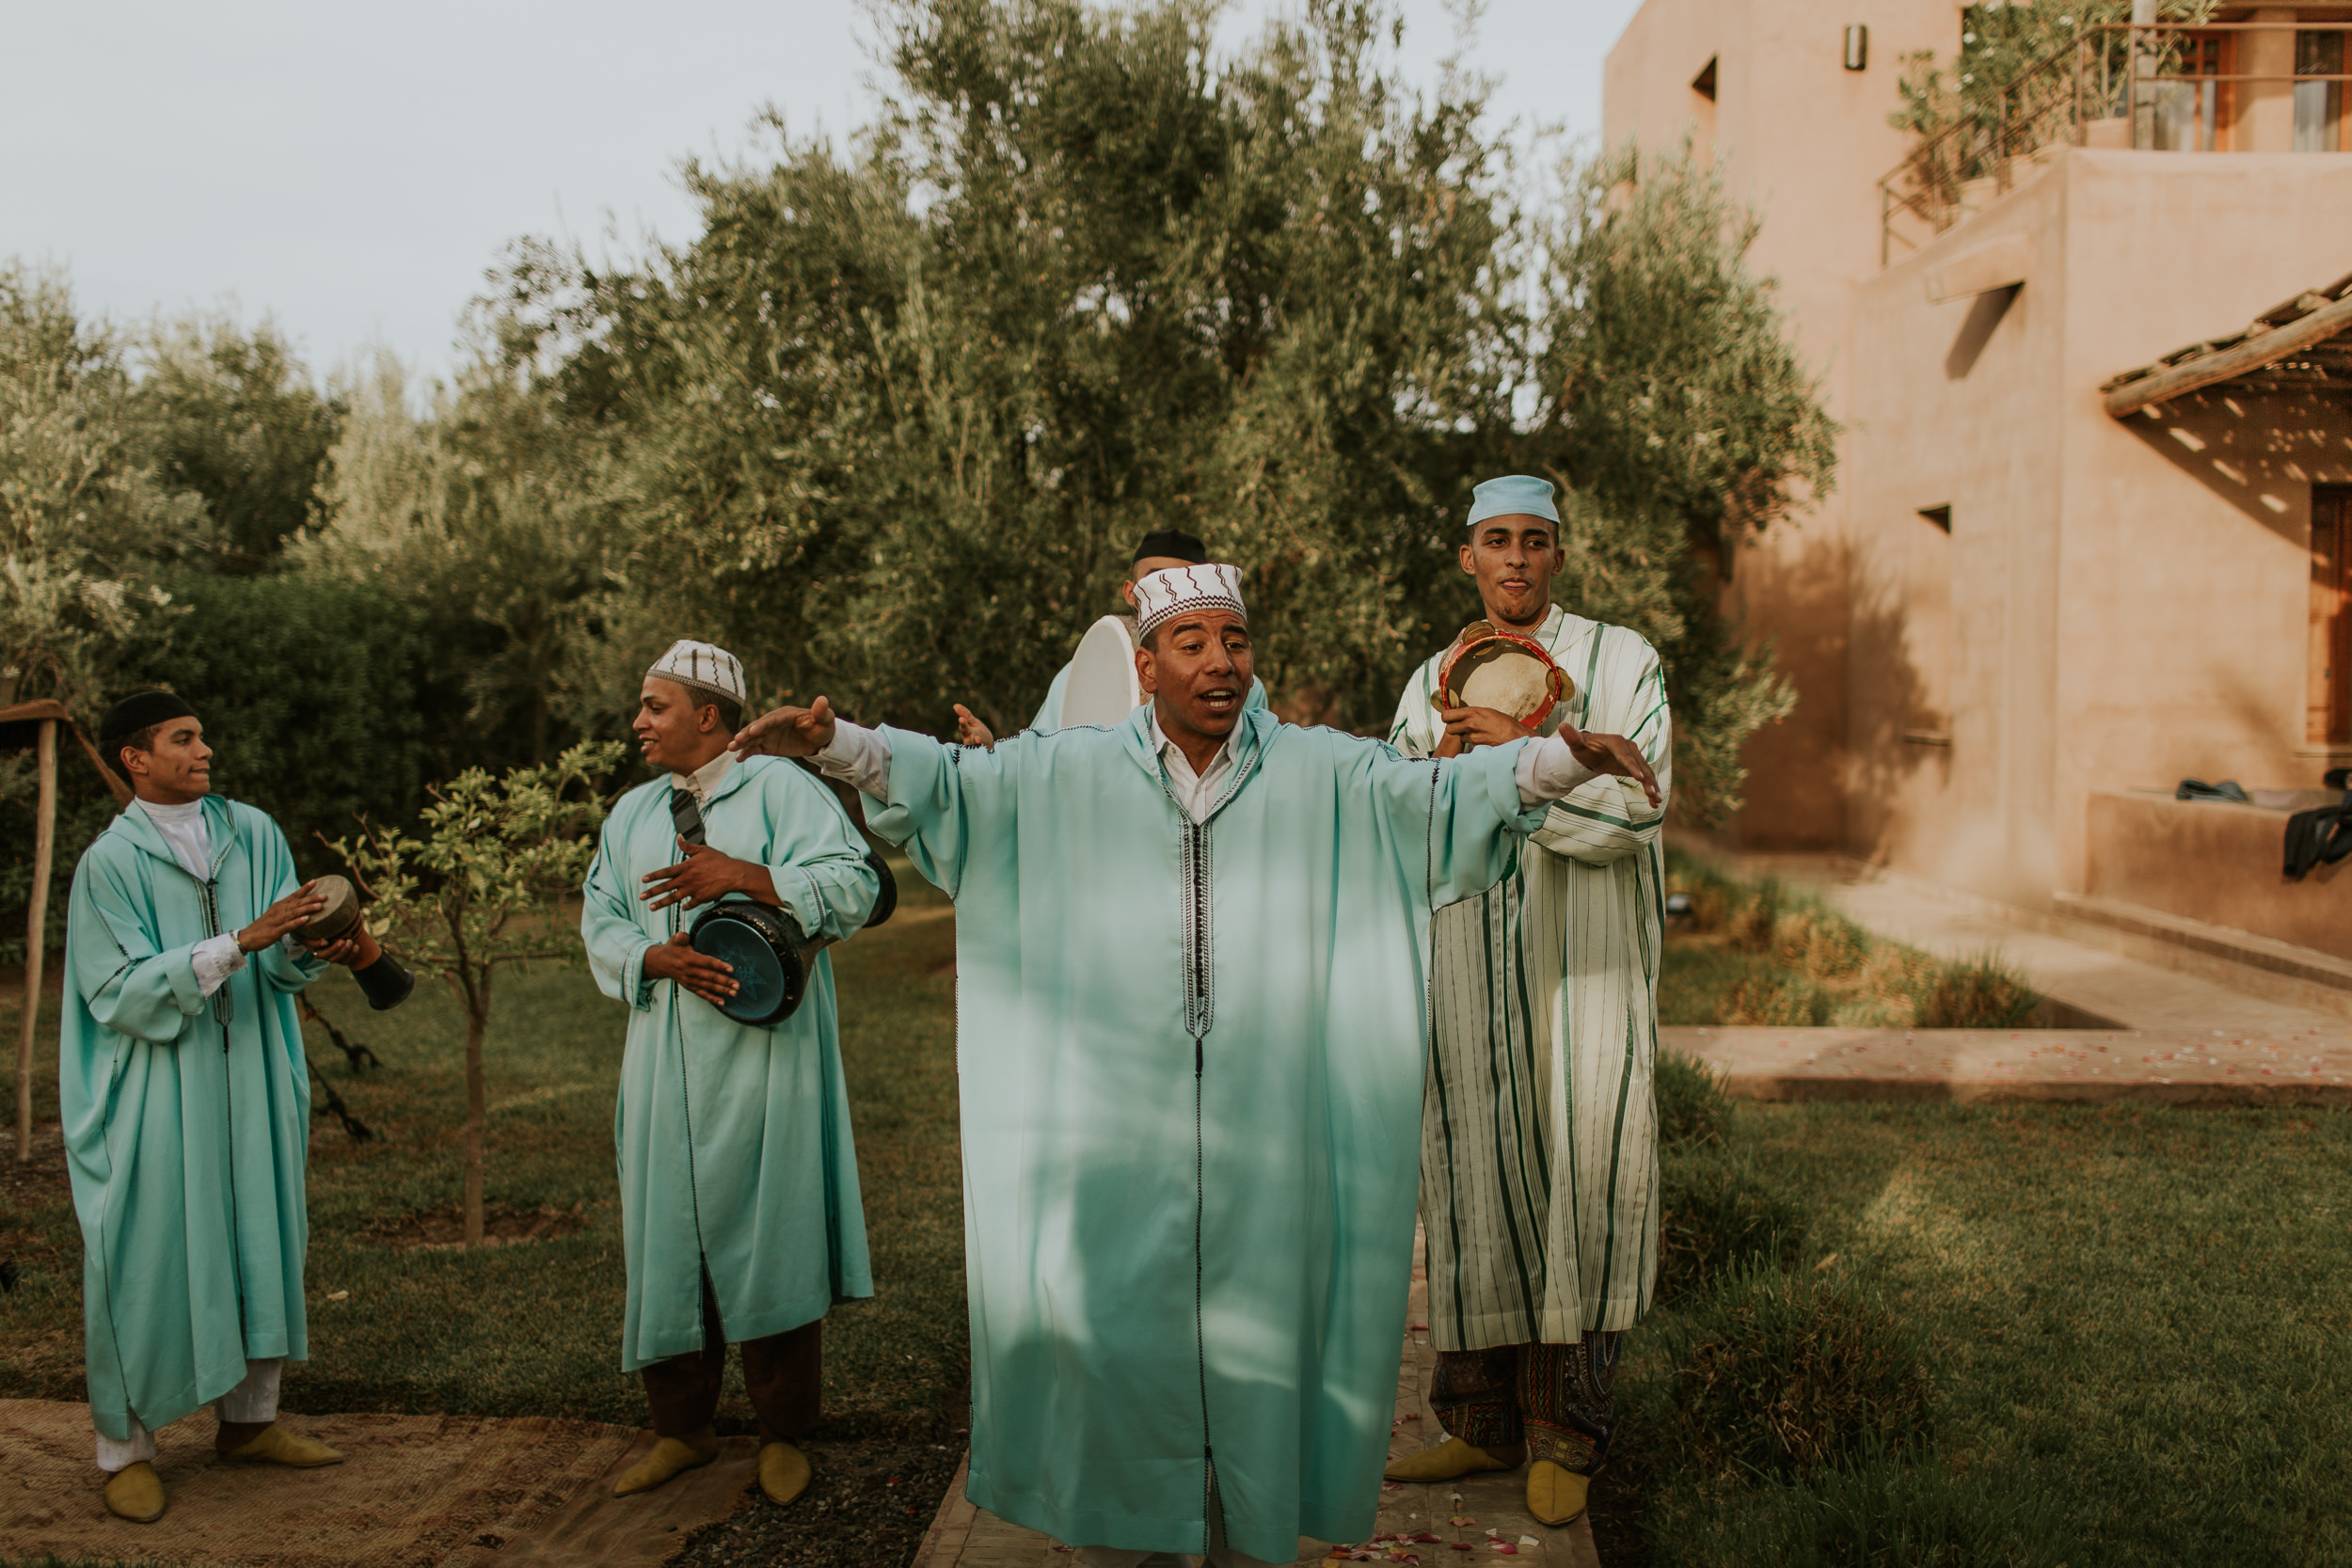 morganedimitri_davidmaire_marrakech_destinationwedding-218.jpg